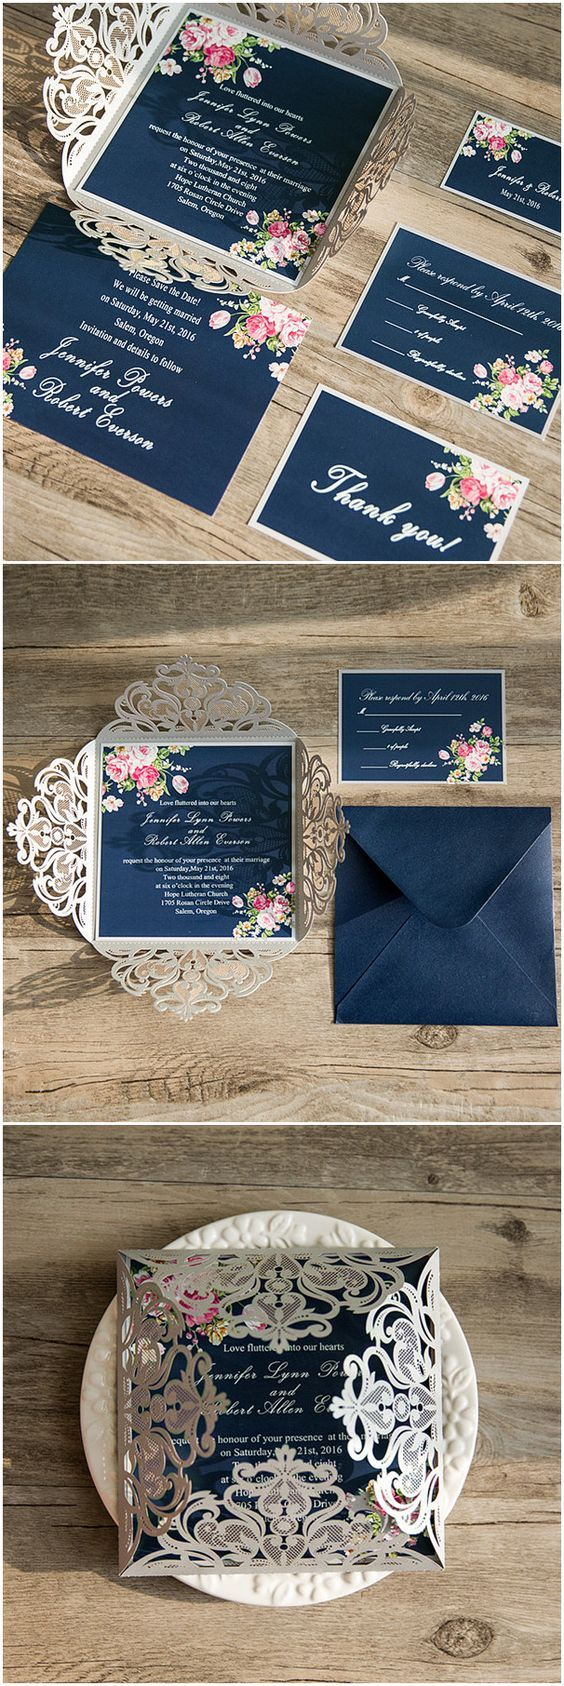 floral wedding invitations floral wedding invitations navy blue floral silver laser cut invitations EWWS as low as 2 09